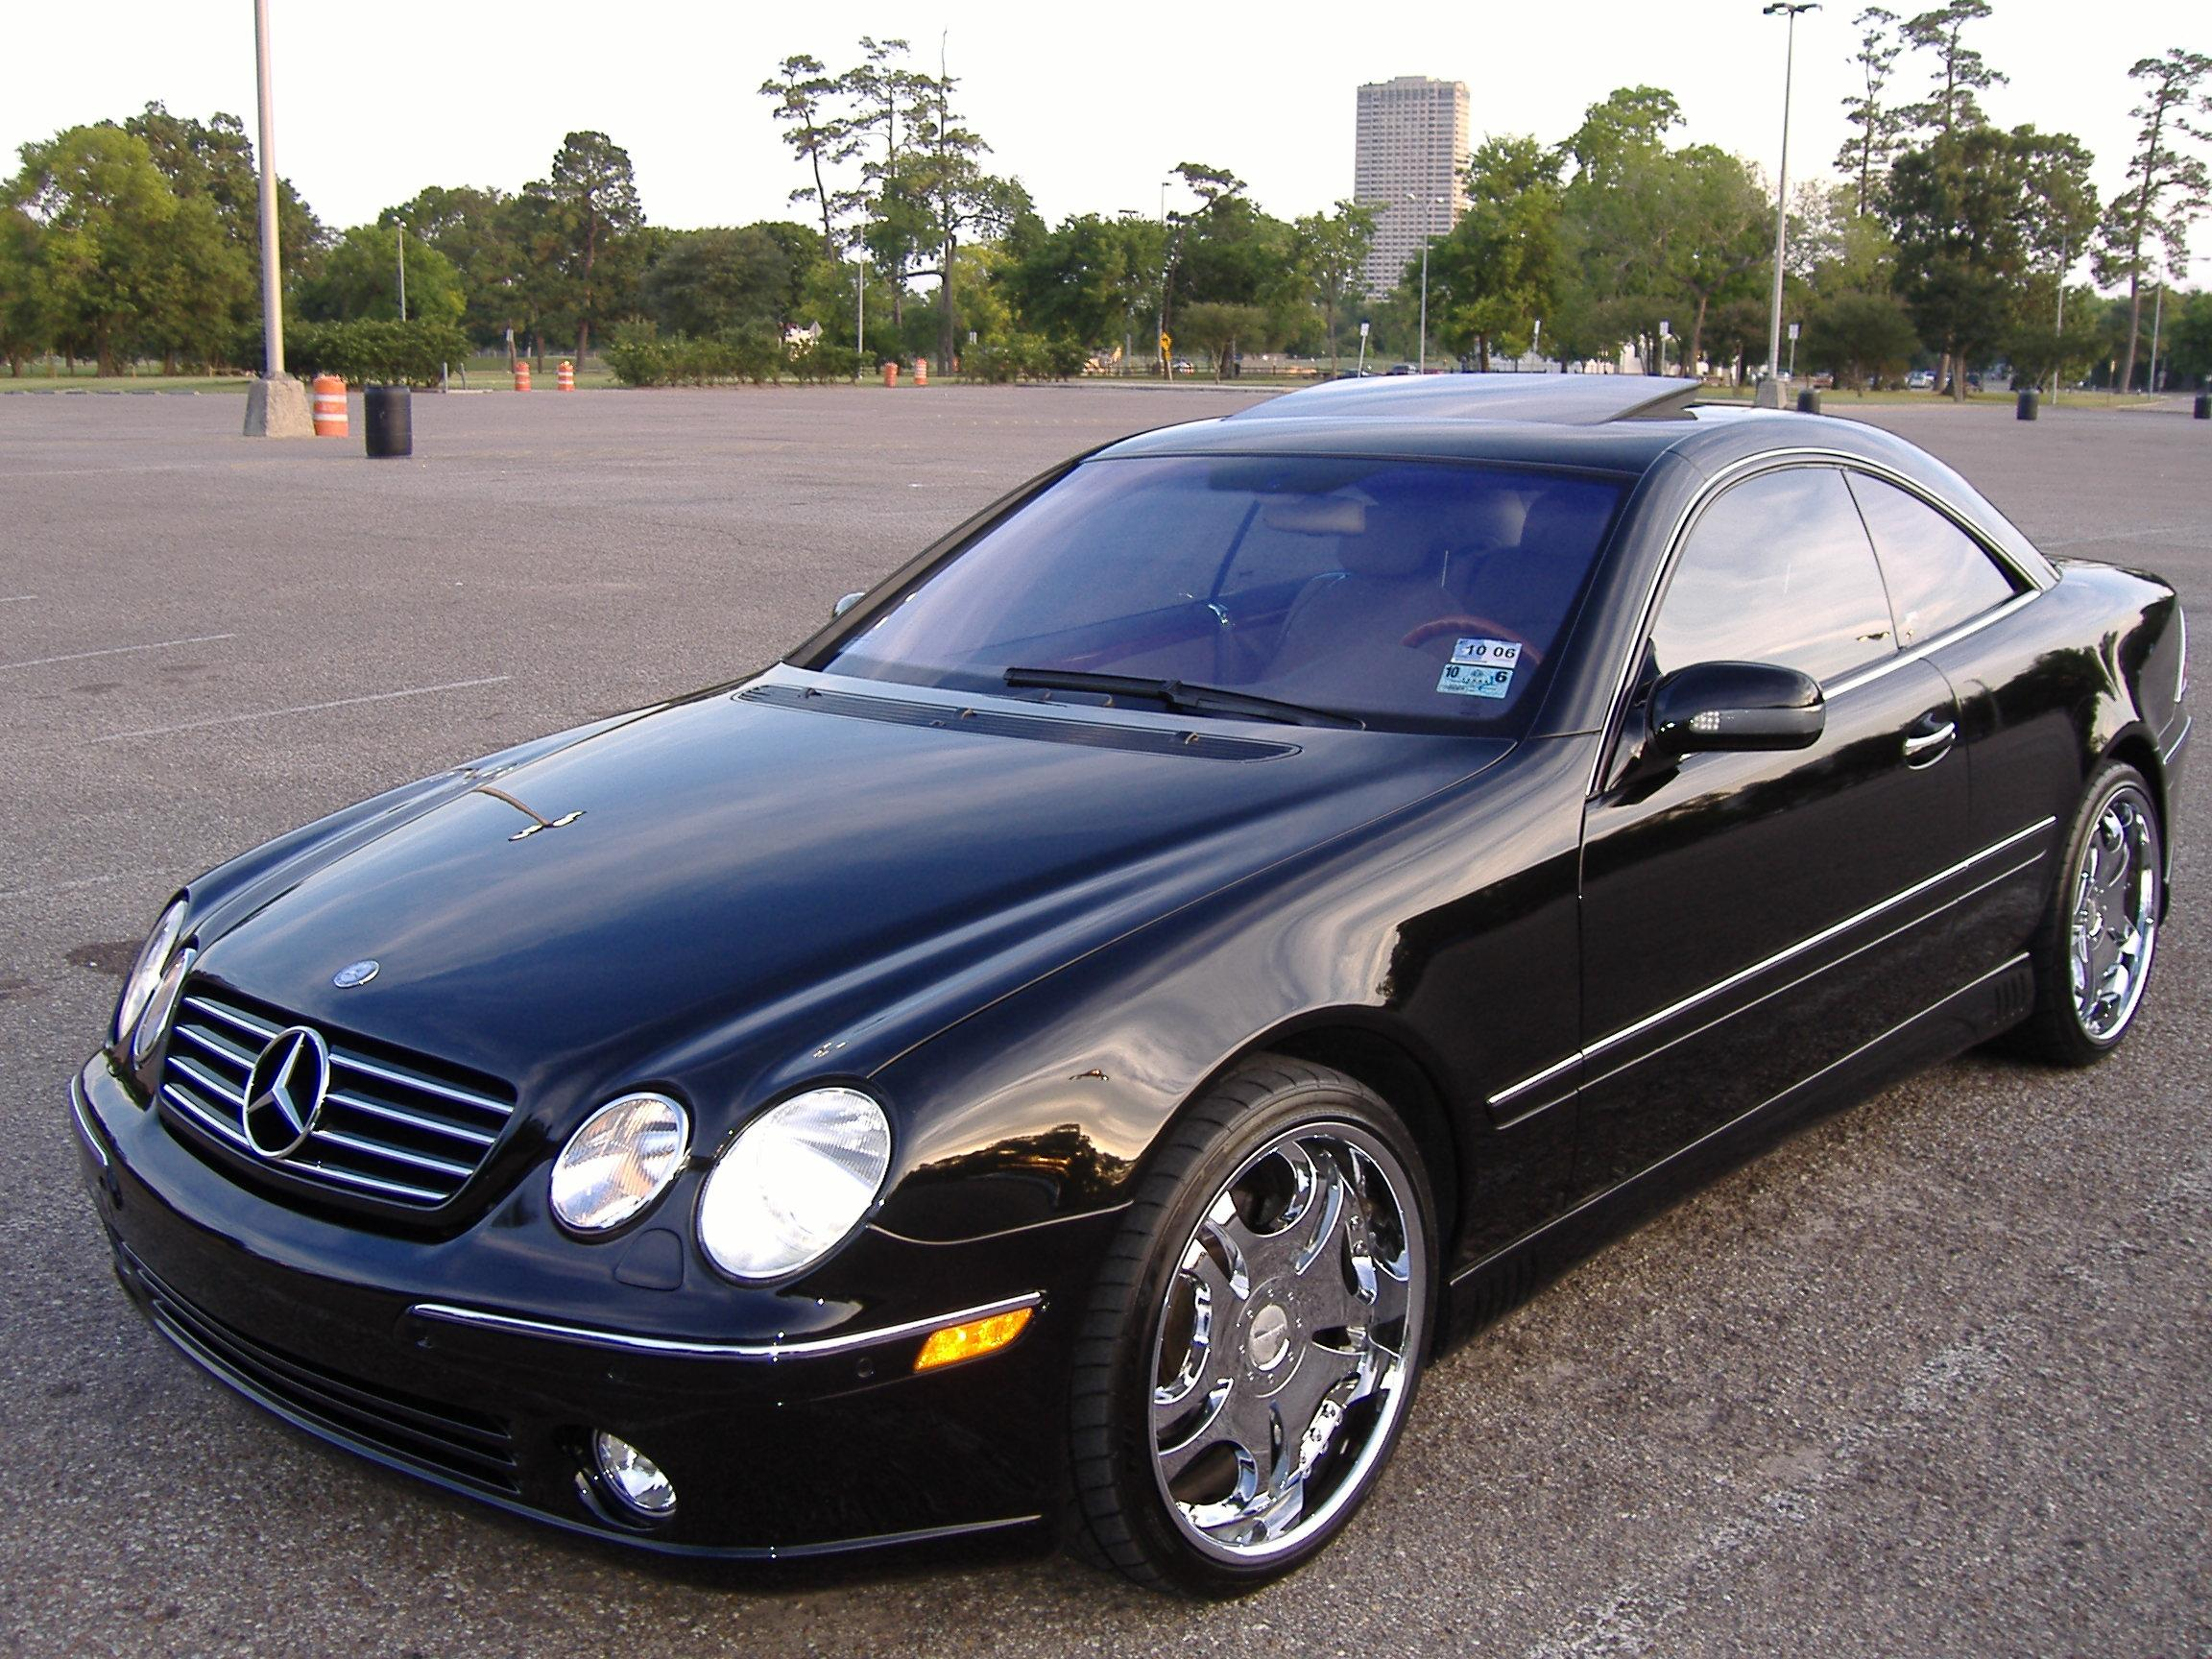 2380s 2001 mercedes benz cl classcl500 coupe 2d specs photos modification info at cardomain. Black Bedroom Furniture Sets. Home Design Ideas